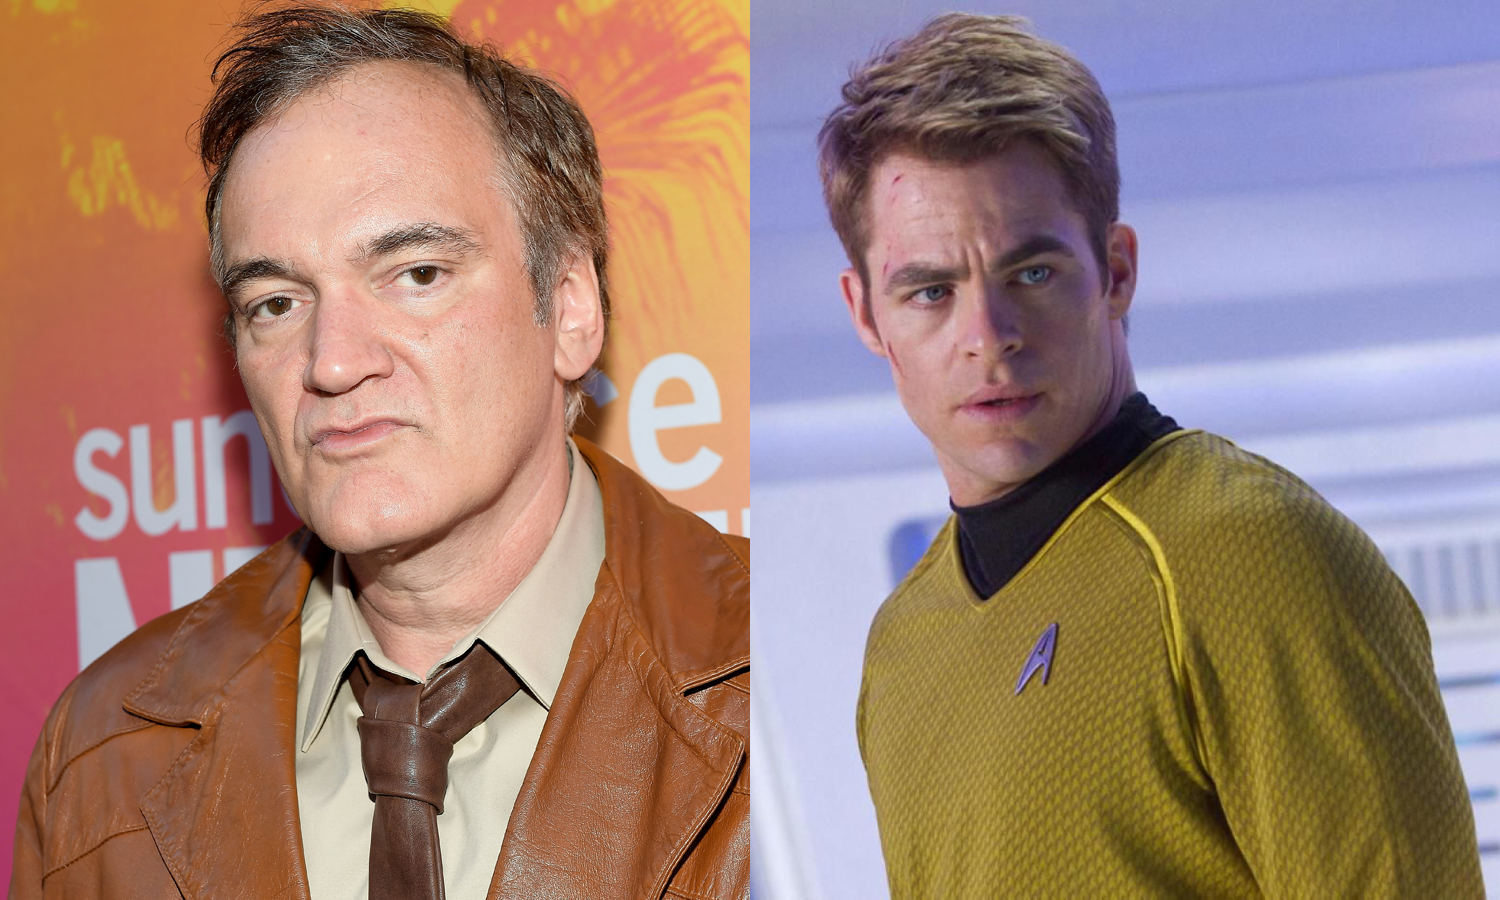 Quentin Tarantino Developing 'Star Trek' Movie Idea With JJ Abrams